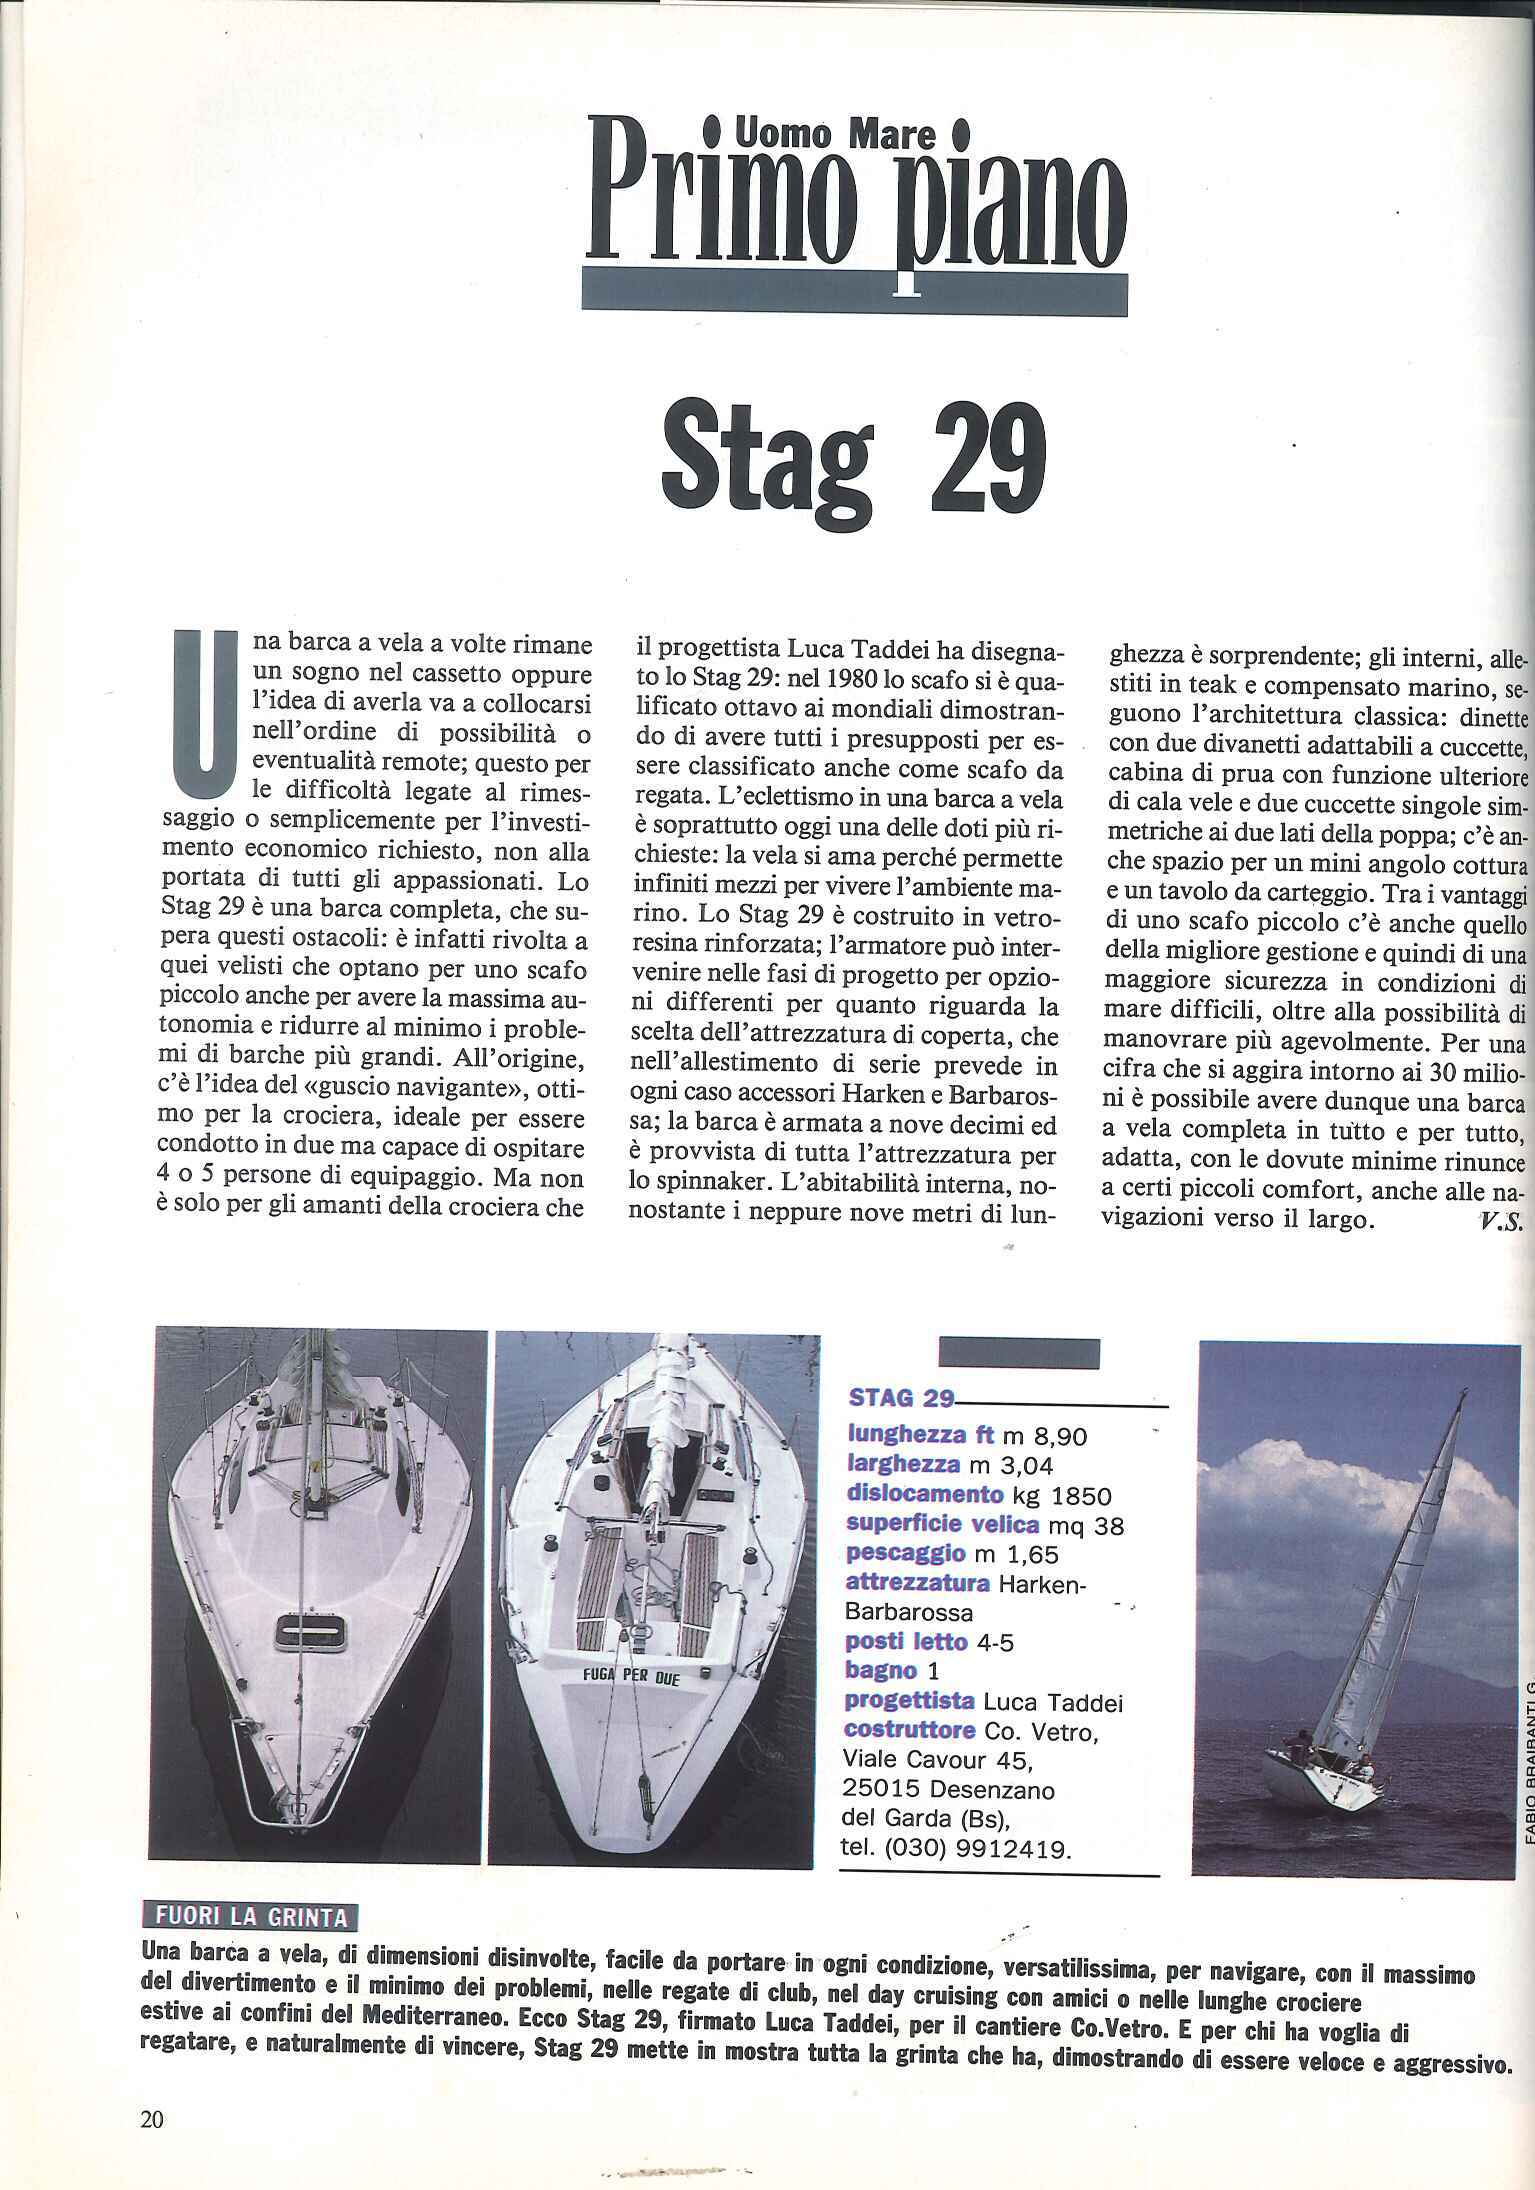 1992 06 PRESS STAG 29 Uomo Mare n°161 (1).jpg